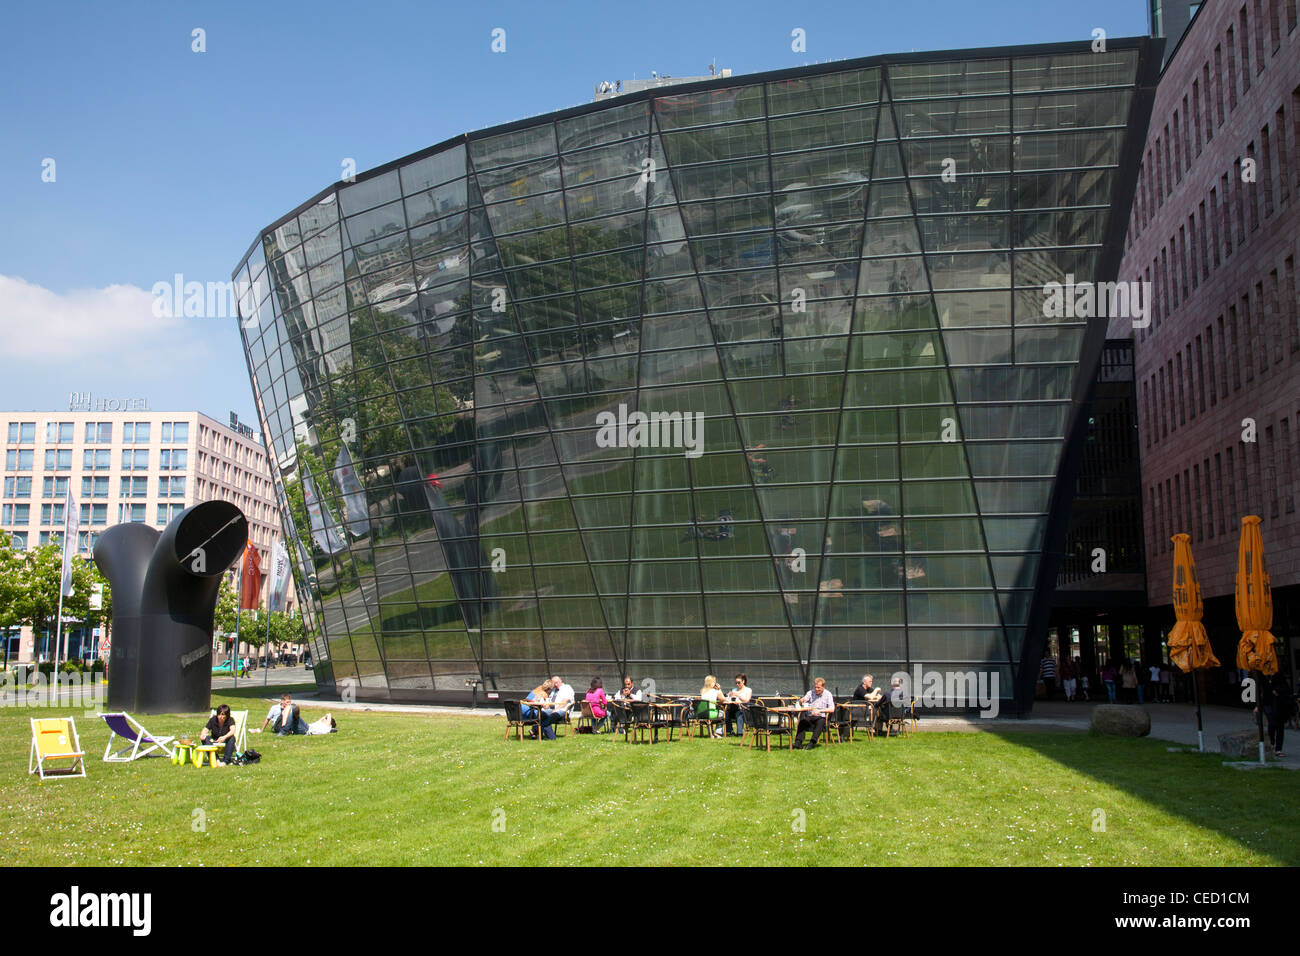 City Library and Regional Library, Dortmund, Ruhr area, North Rhine-Westphalia, Germany, Europe - Stock Image